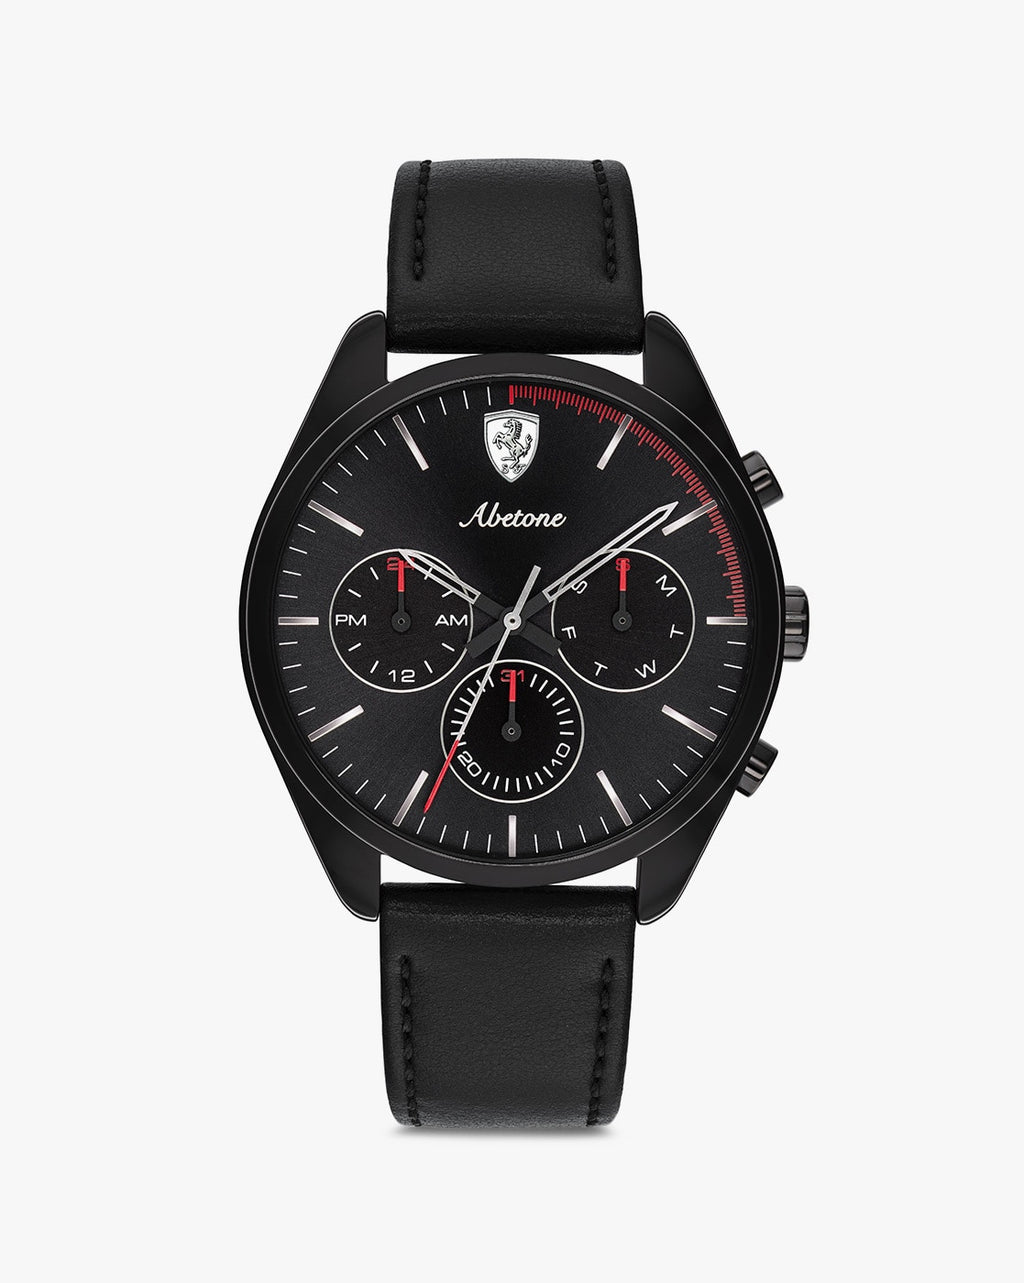 830503 Chronograph Wrist Watch with Genuine Leather Strap